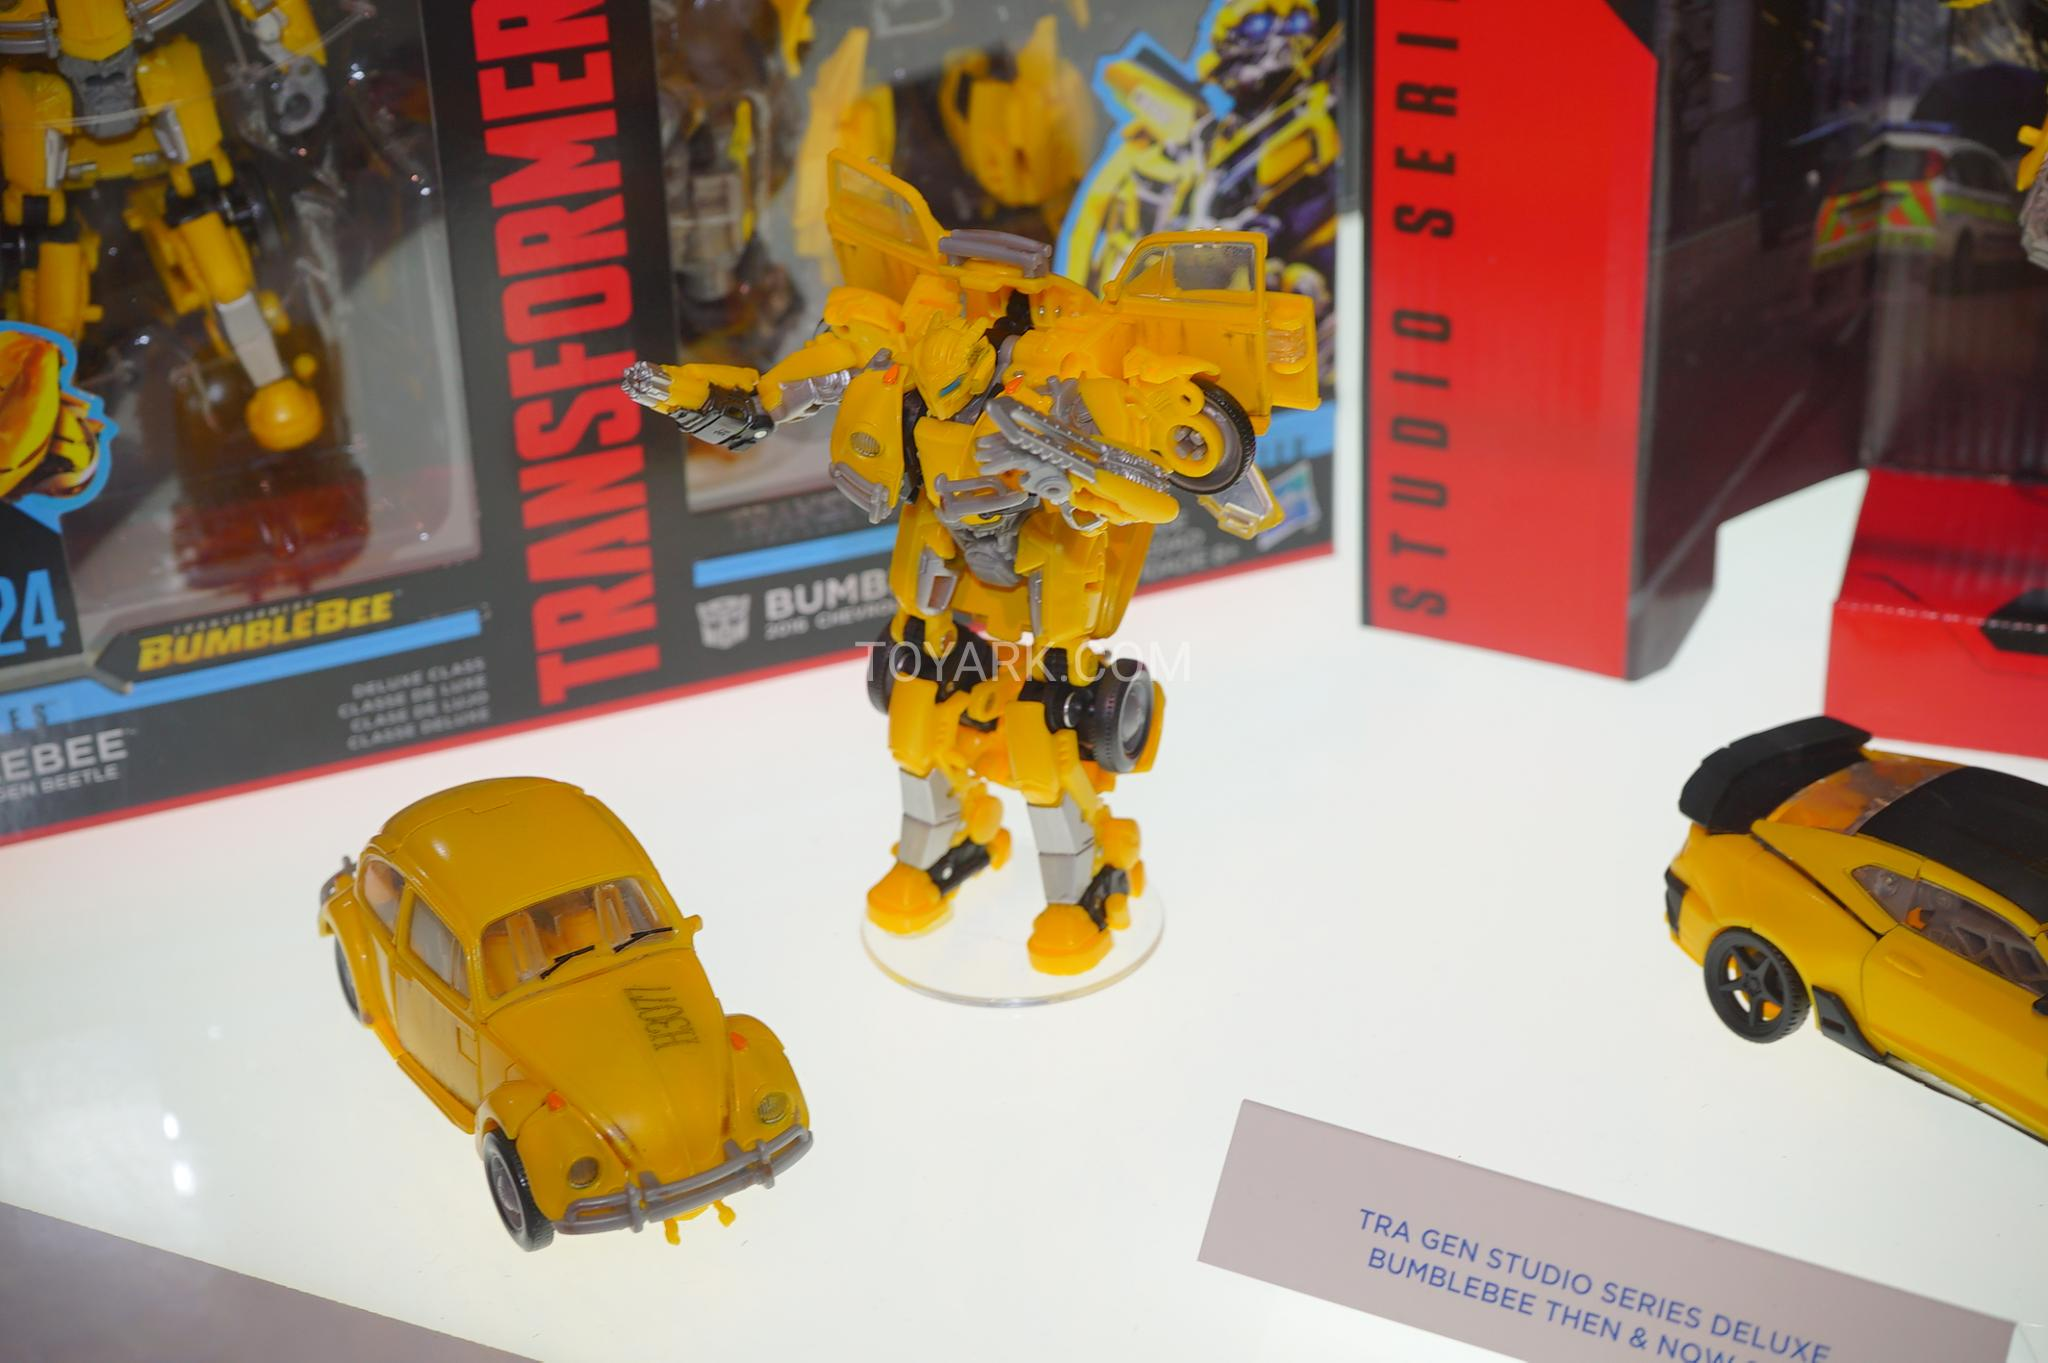 san diego comicon 2018 bumblebee the movie toys images